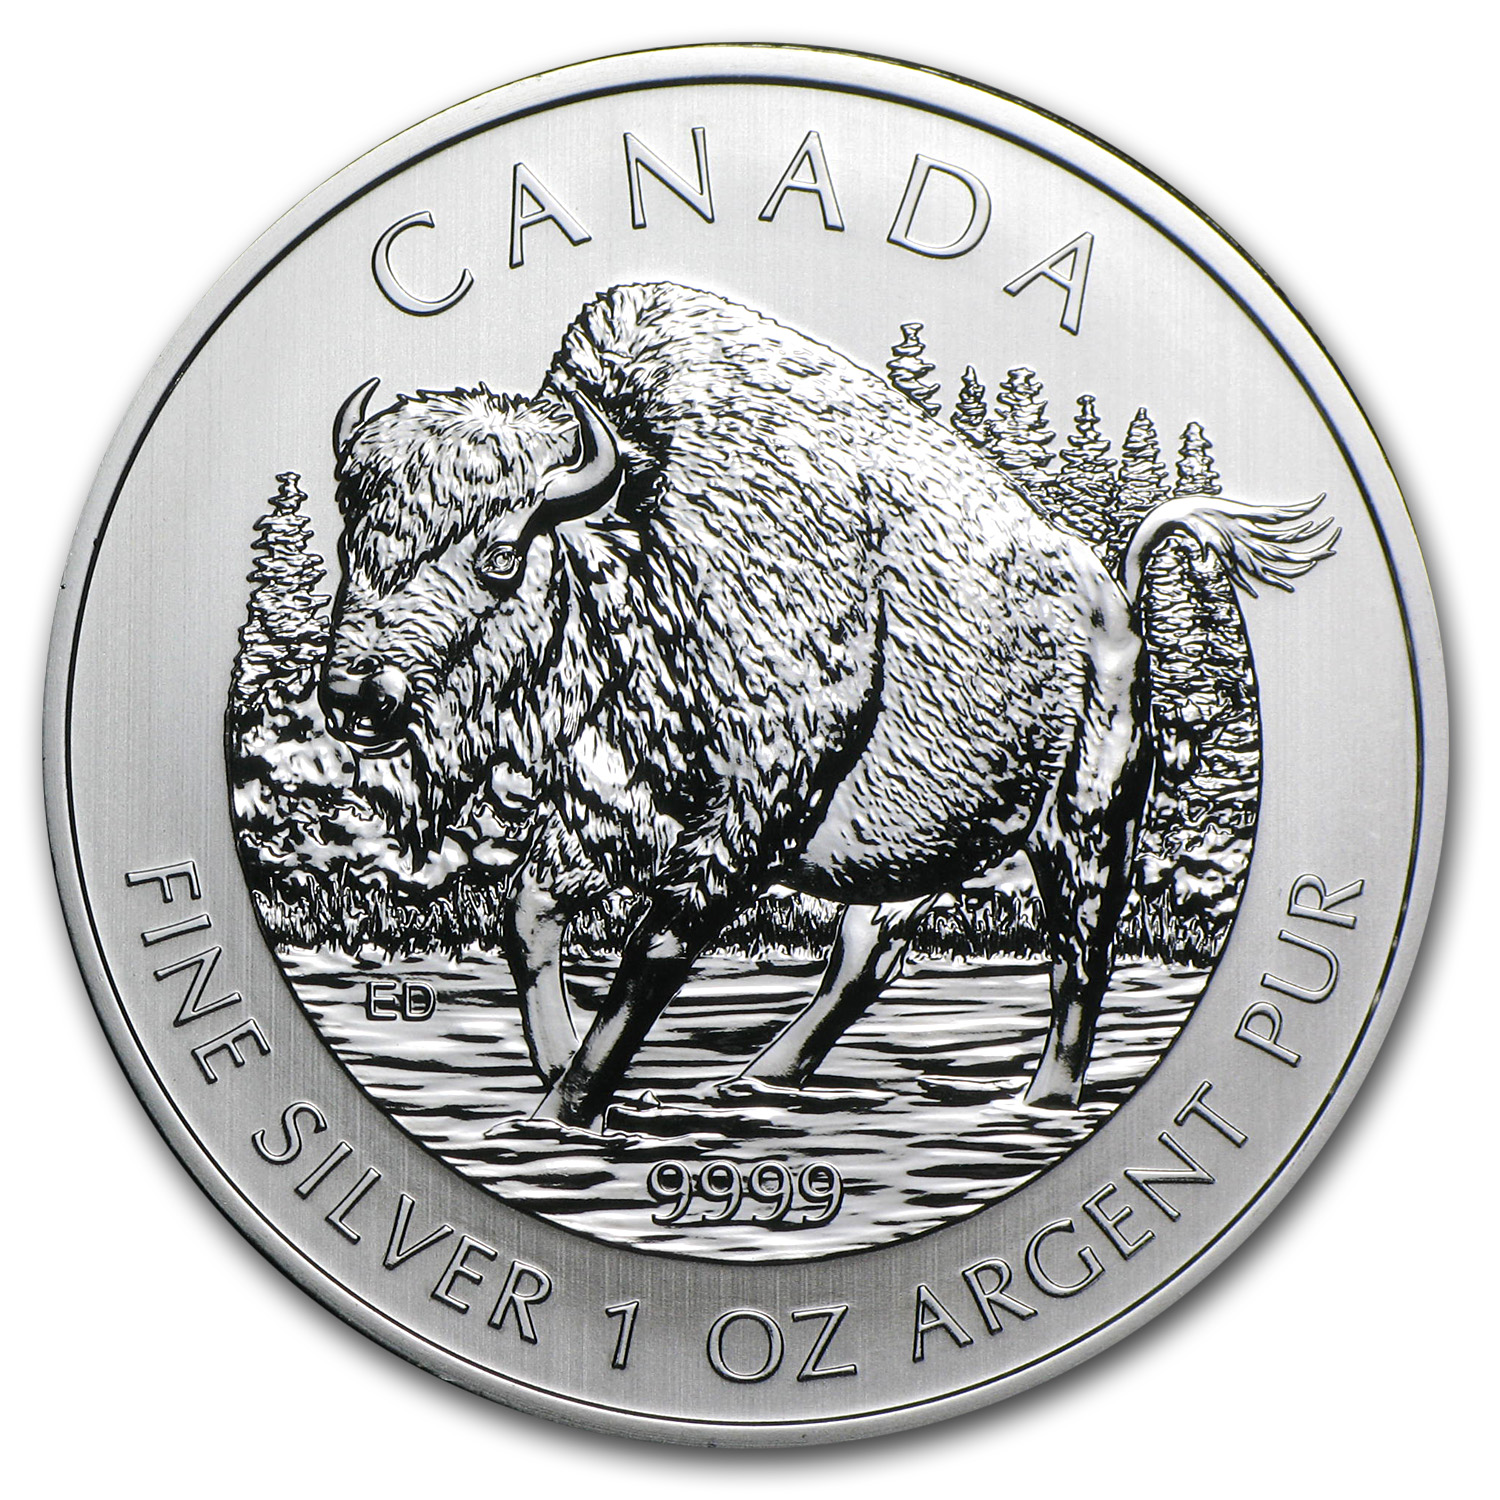 2013 Canada 1 oz Silver Wildlife Series Wood Bison